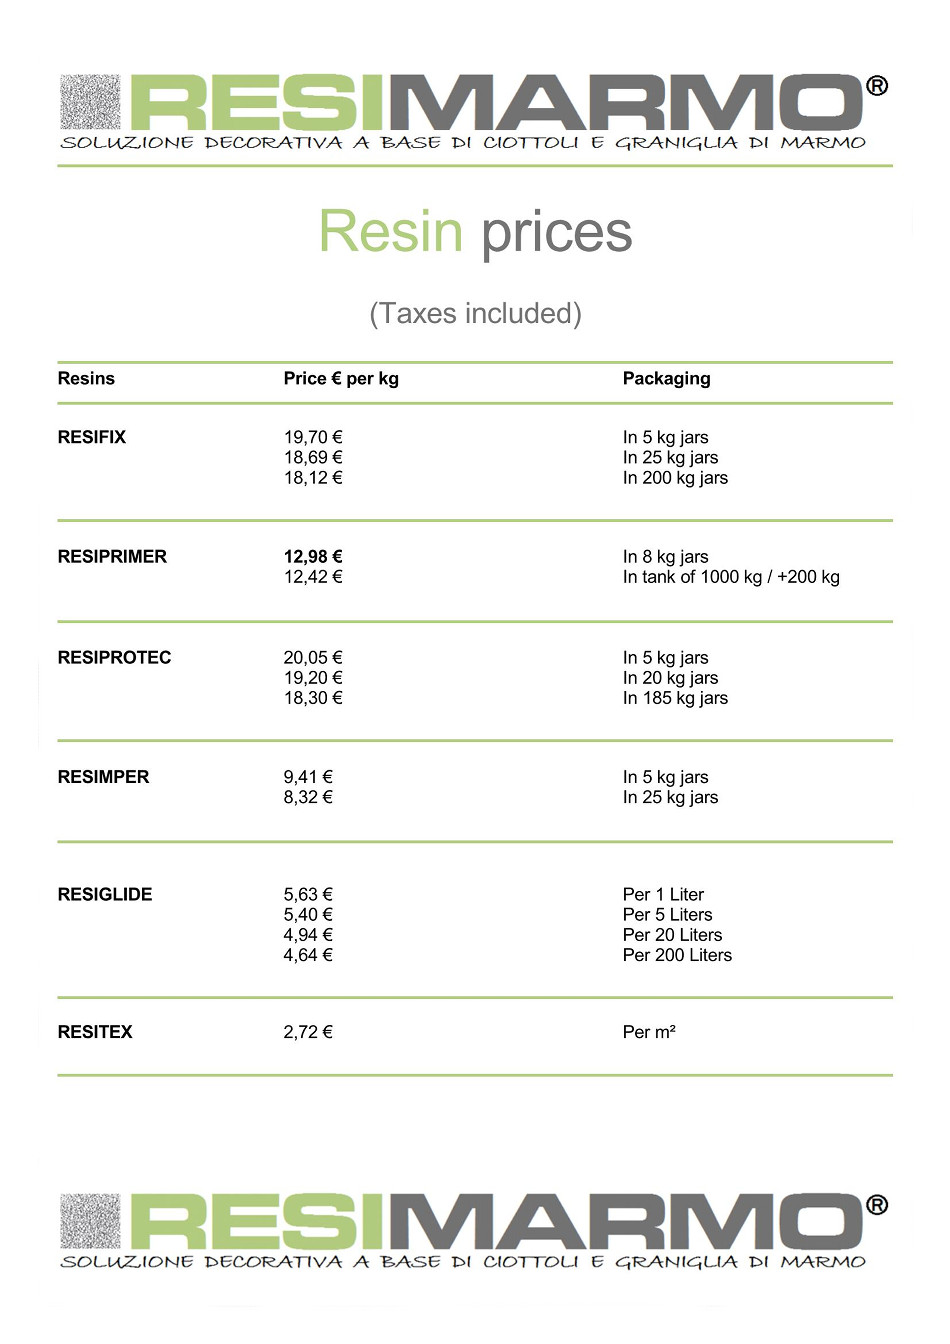 The marble aggregates - Resin prices